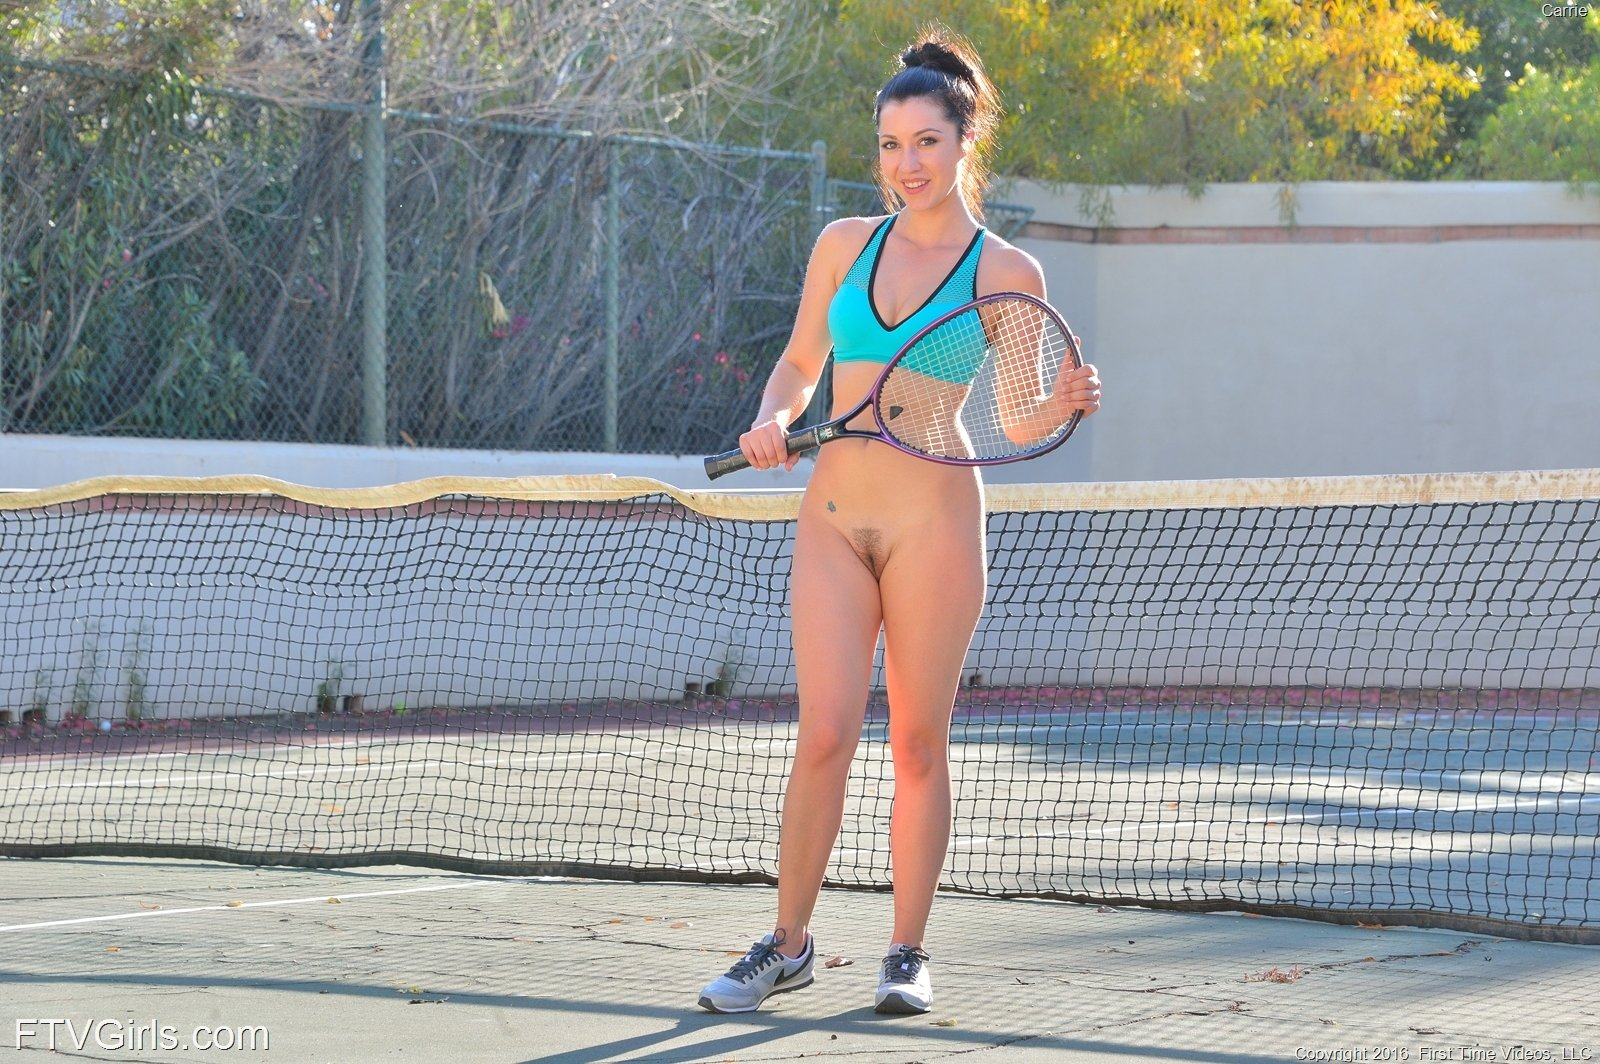 Carrie In Buttalicious Tennis By Ftv Girls 16 Photos -4587